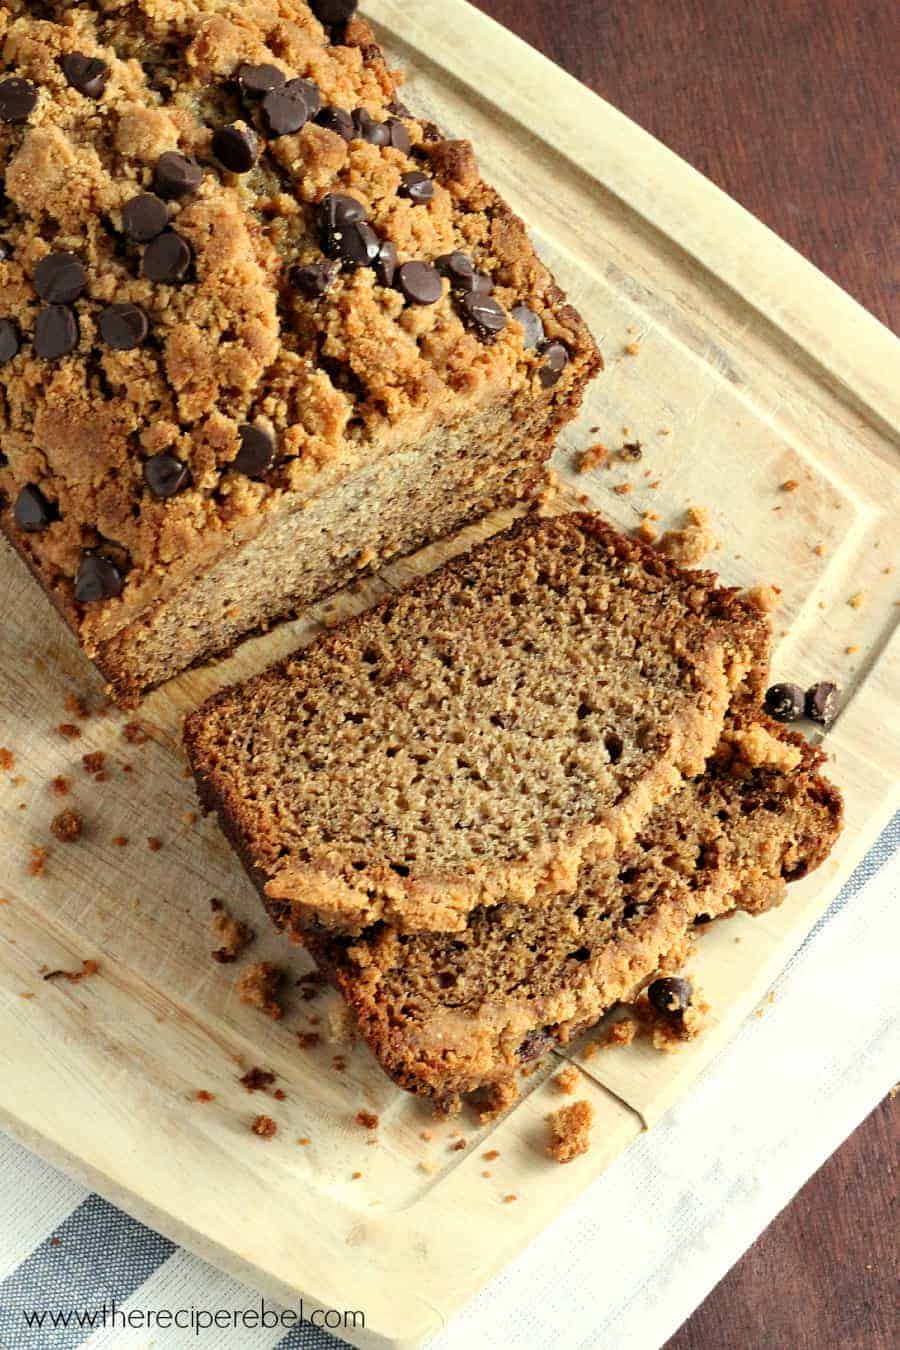 Peanut Butter Chocolate Chip Streusel Banana Bread - The Recipe Rebel